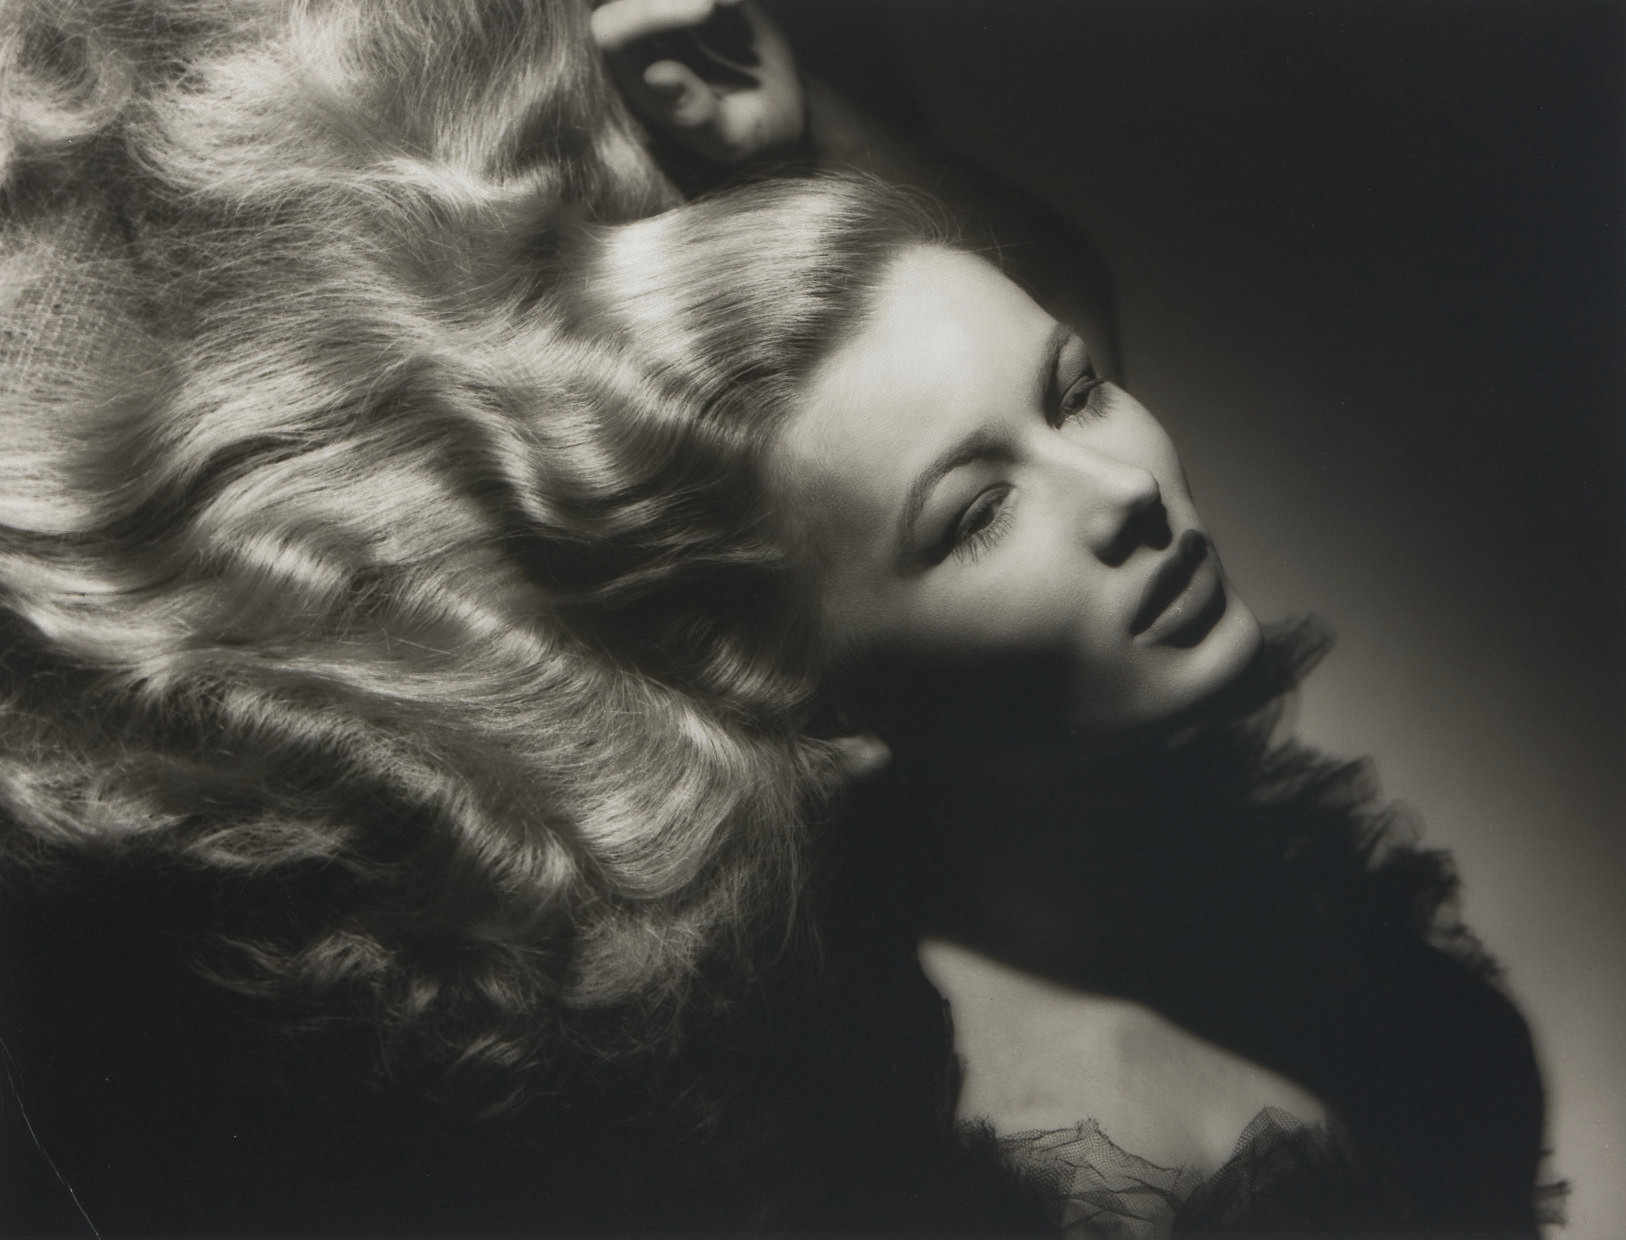 Portraits of Hollywood screen goddesses, Joan Crawford, Veronica Lake (illustrated), Rita Hayworth and Jane Russell, 1932-1946